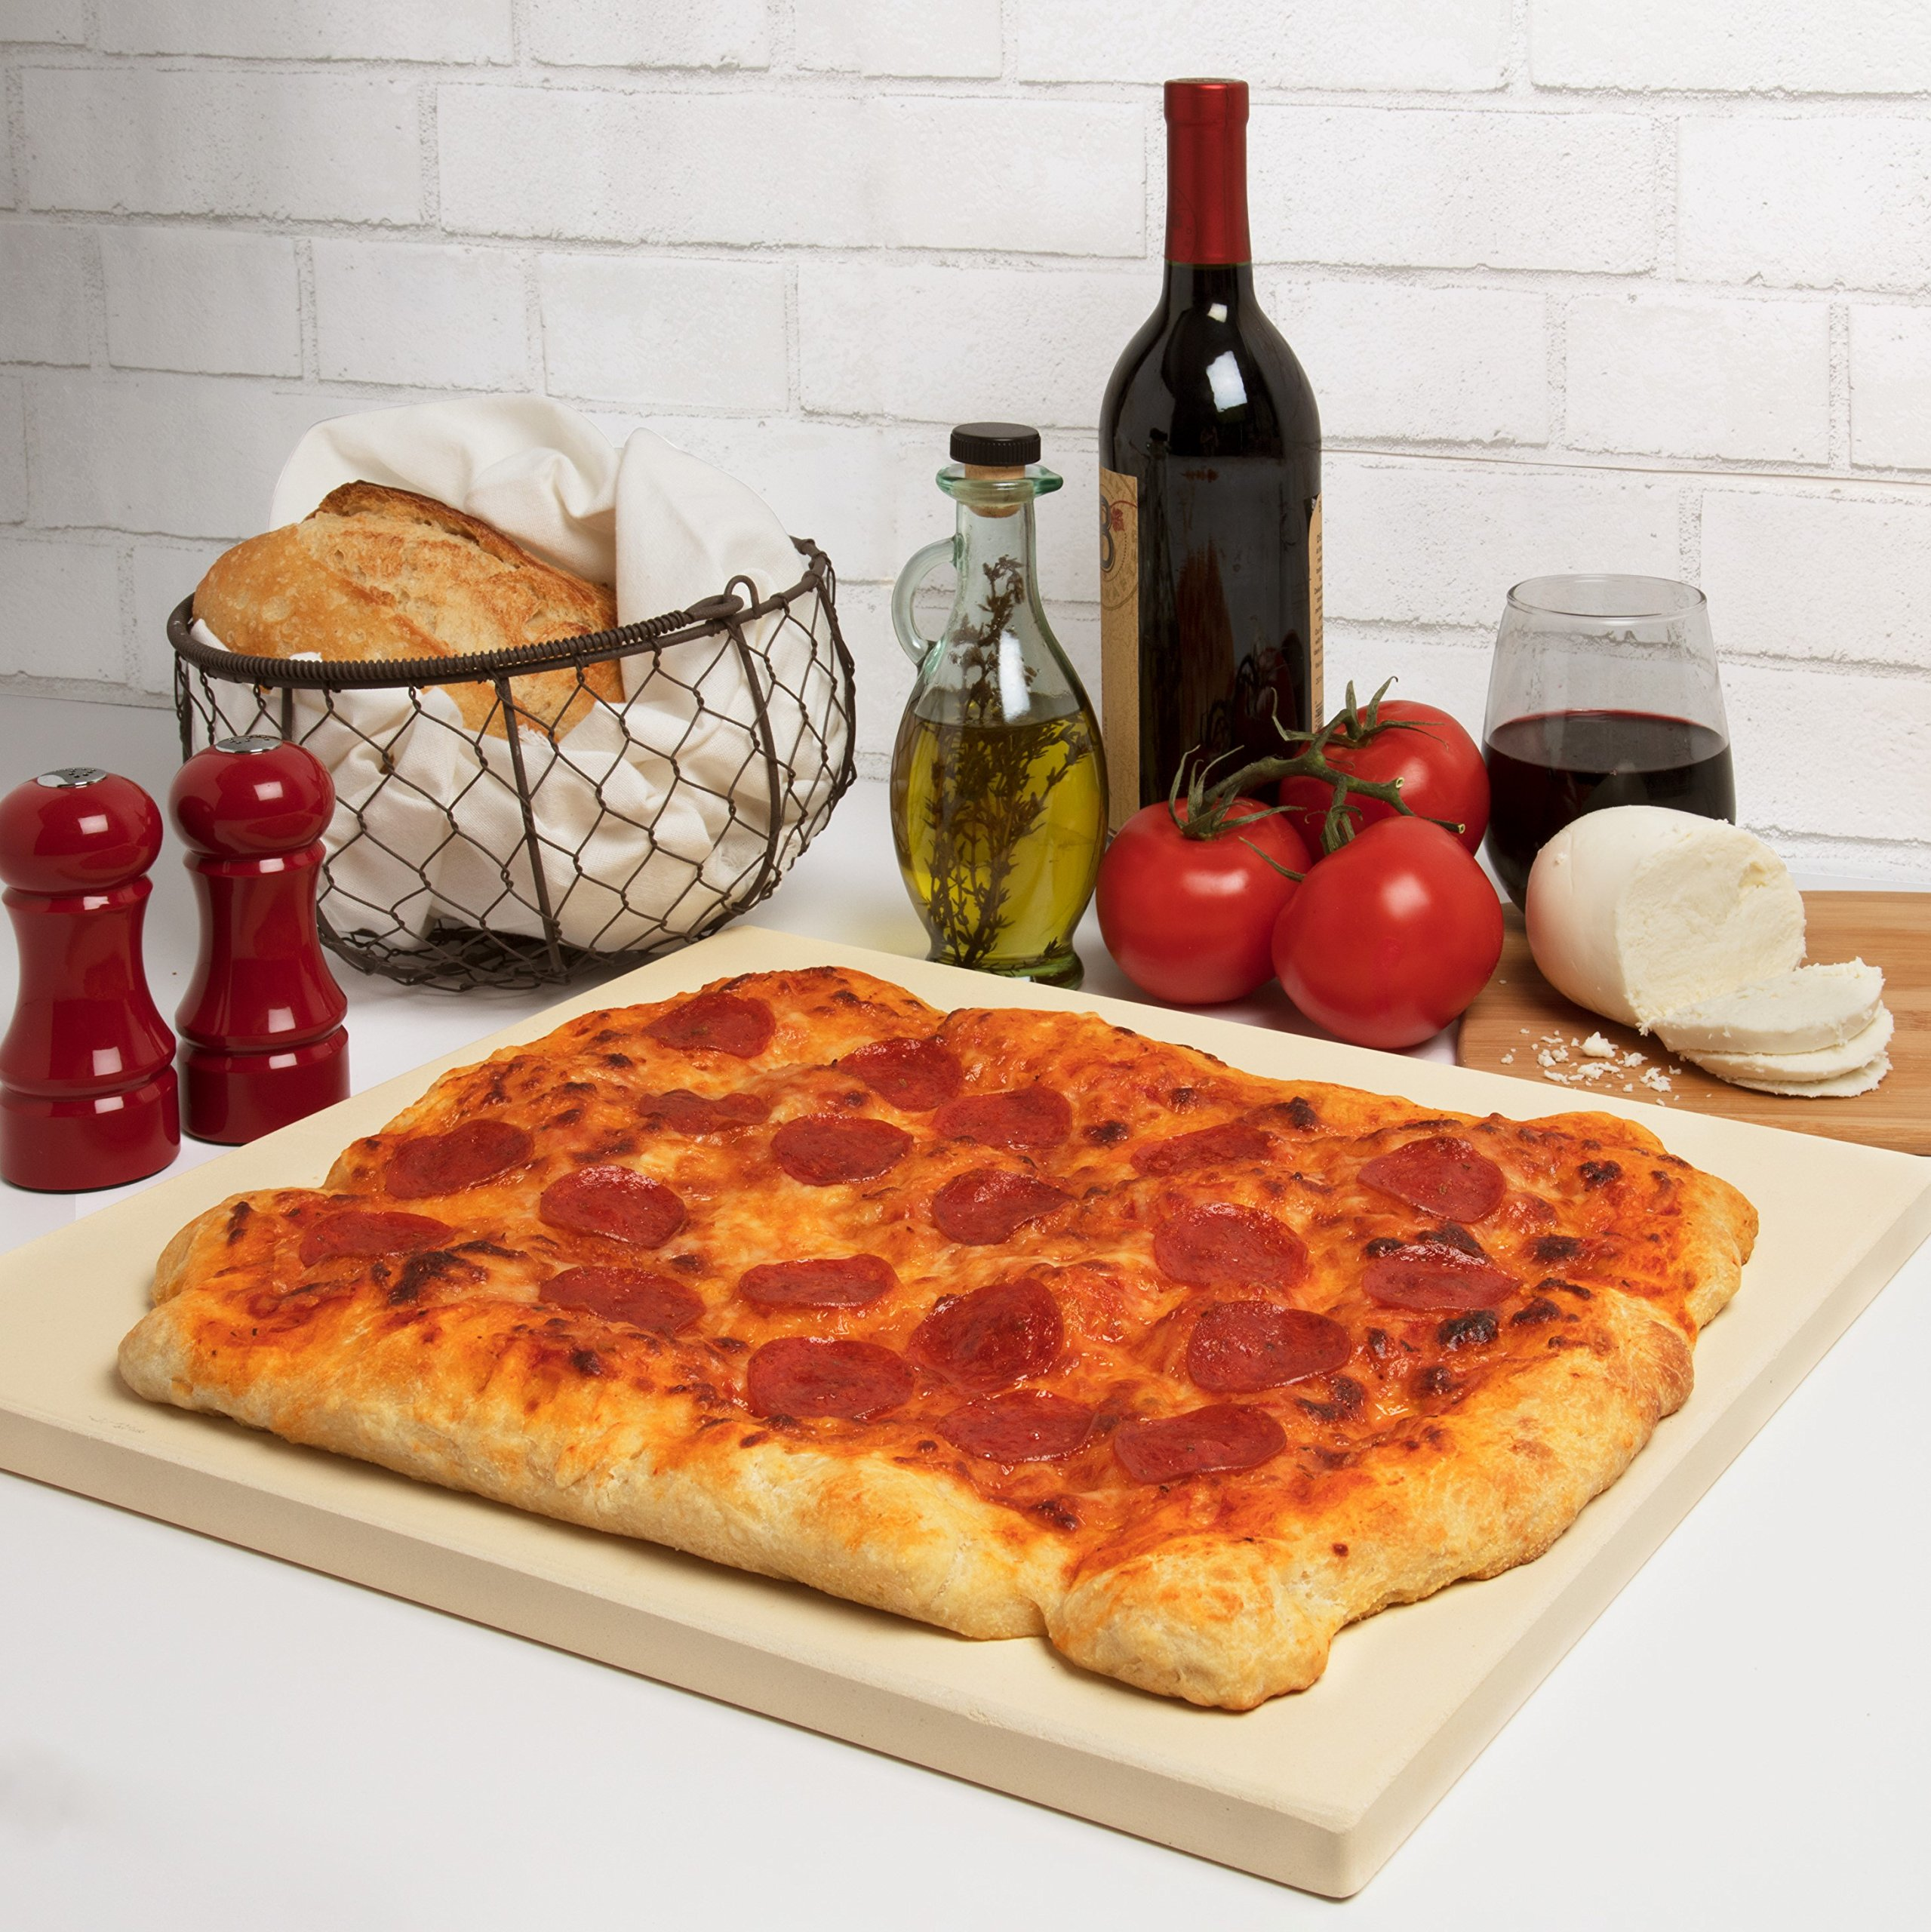 CucinaPro 815 Oven, Grill, BBQ-Rectangular Pizza Baking Stone-XL 16'' x 14'' Pan for Perfect Crispy Crust, Light Brown